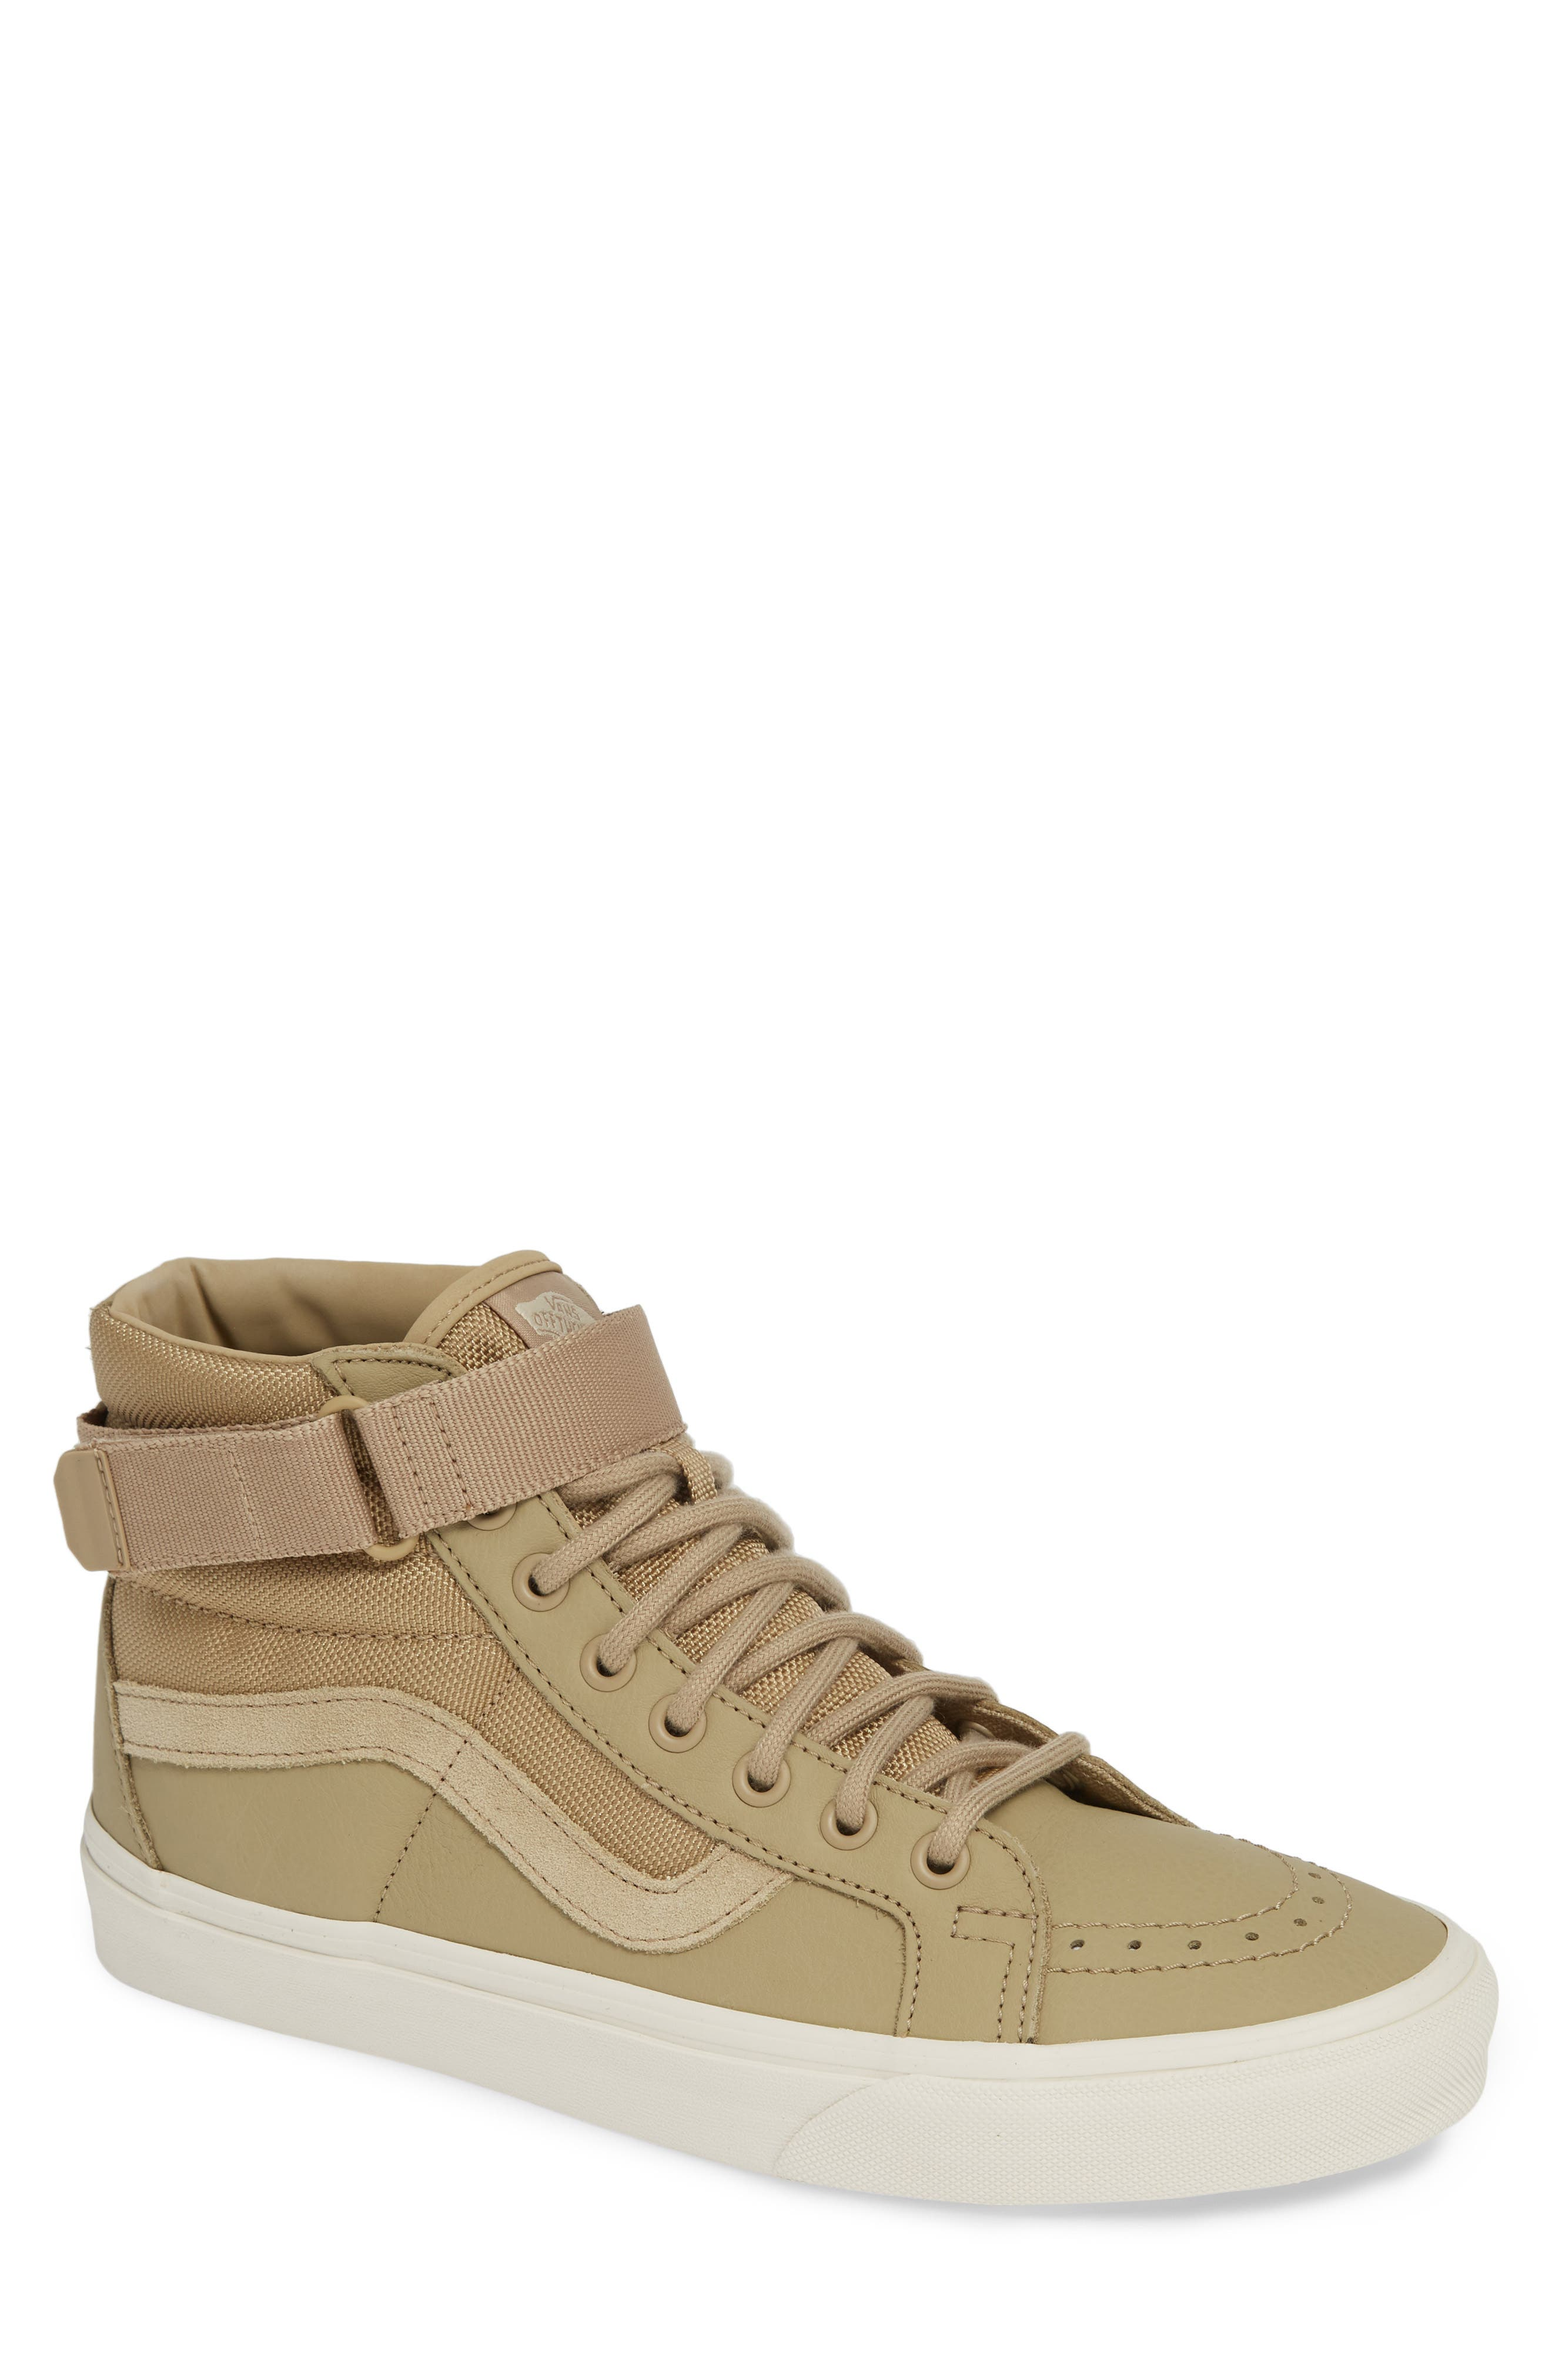 VANS Sk8-Hi Reissue Strap Sneaker, Main, color, 260